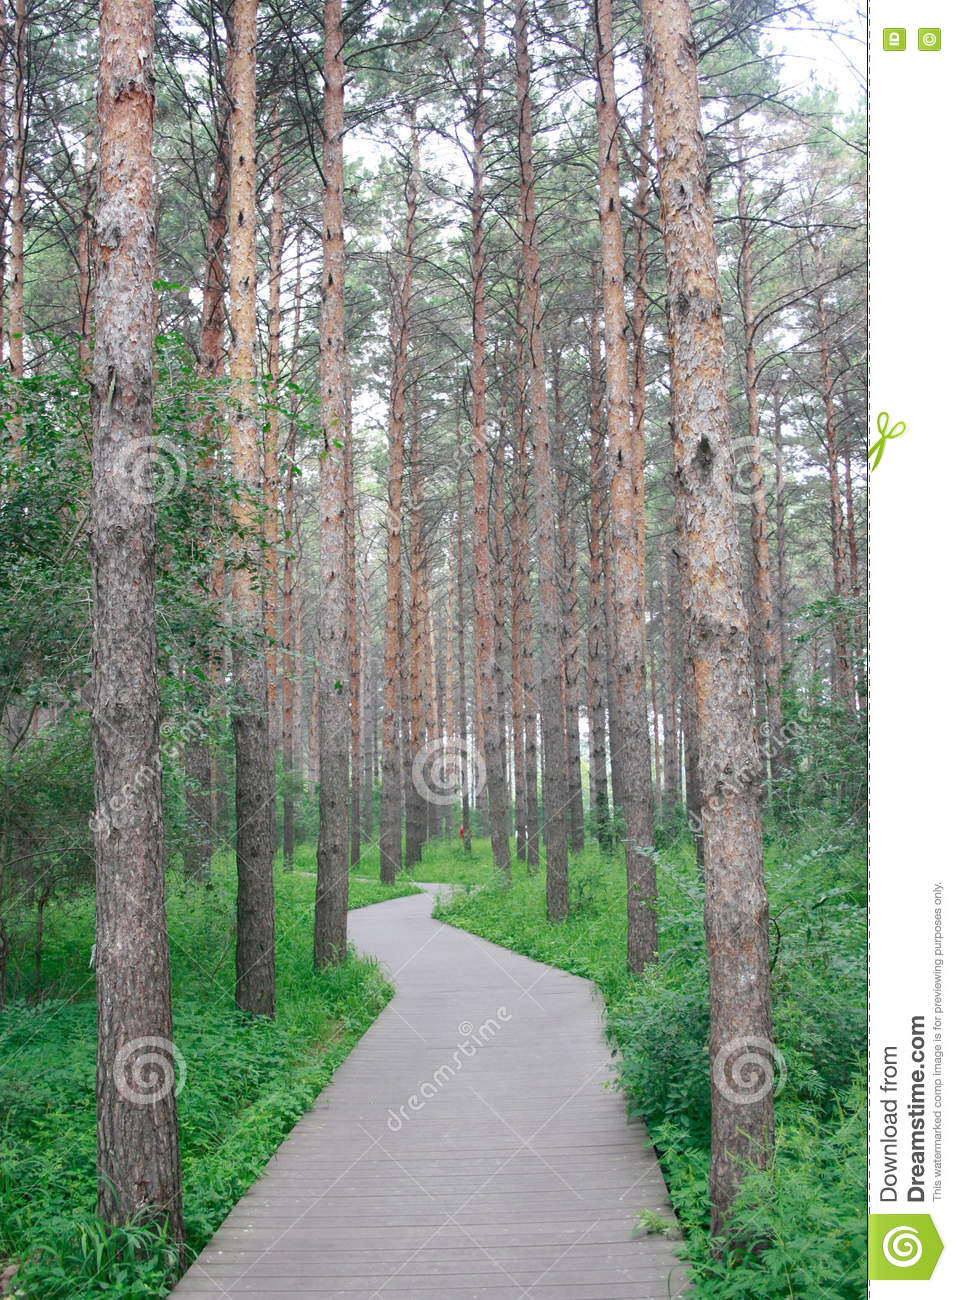 The pine forest path